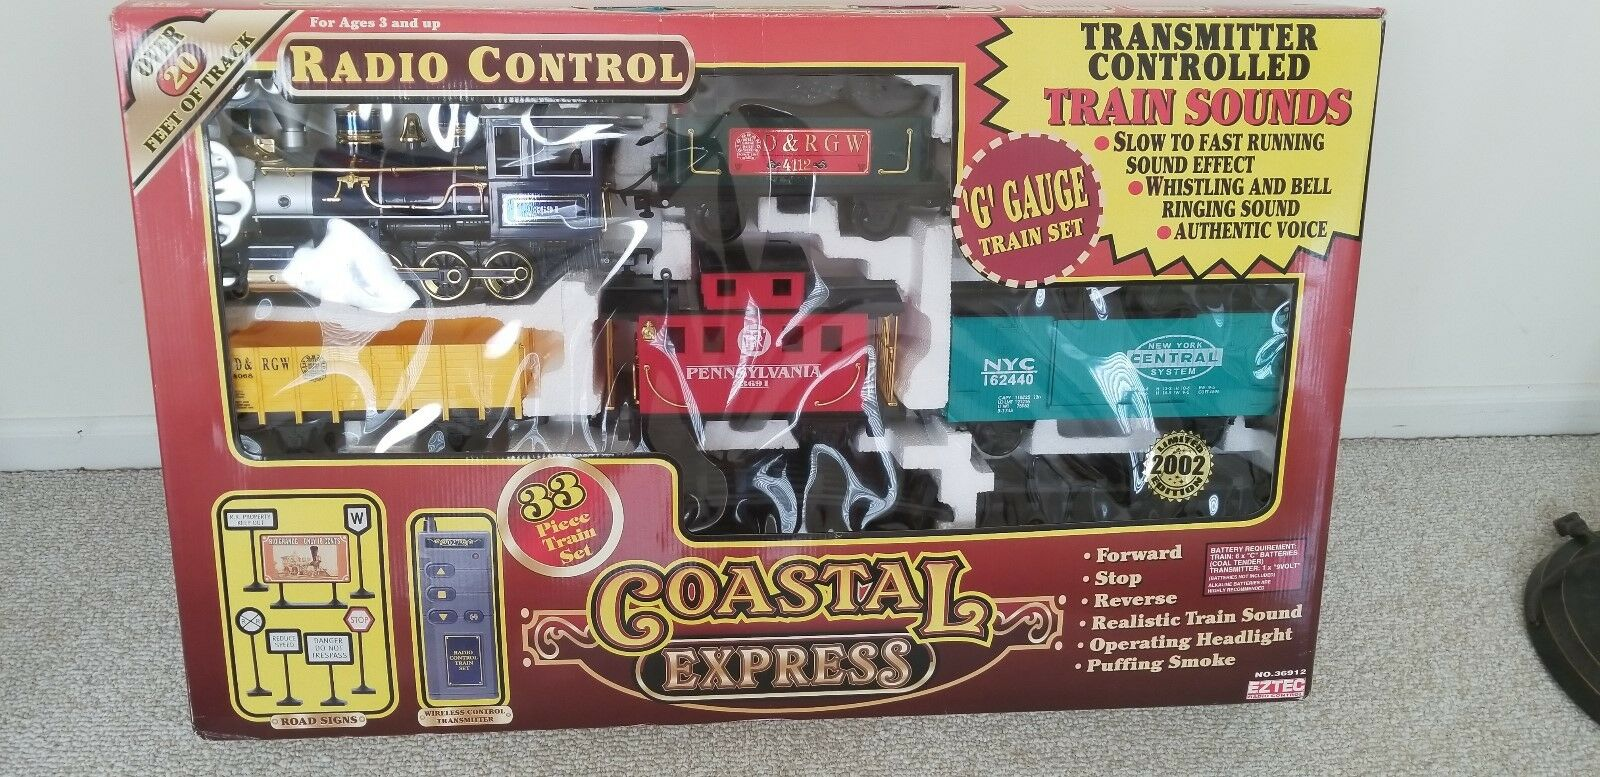 COASTAL EXPRESS Radio Control Train Set   G Gauge   Sounds and Smoke